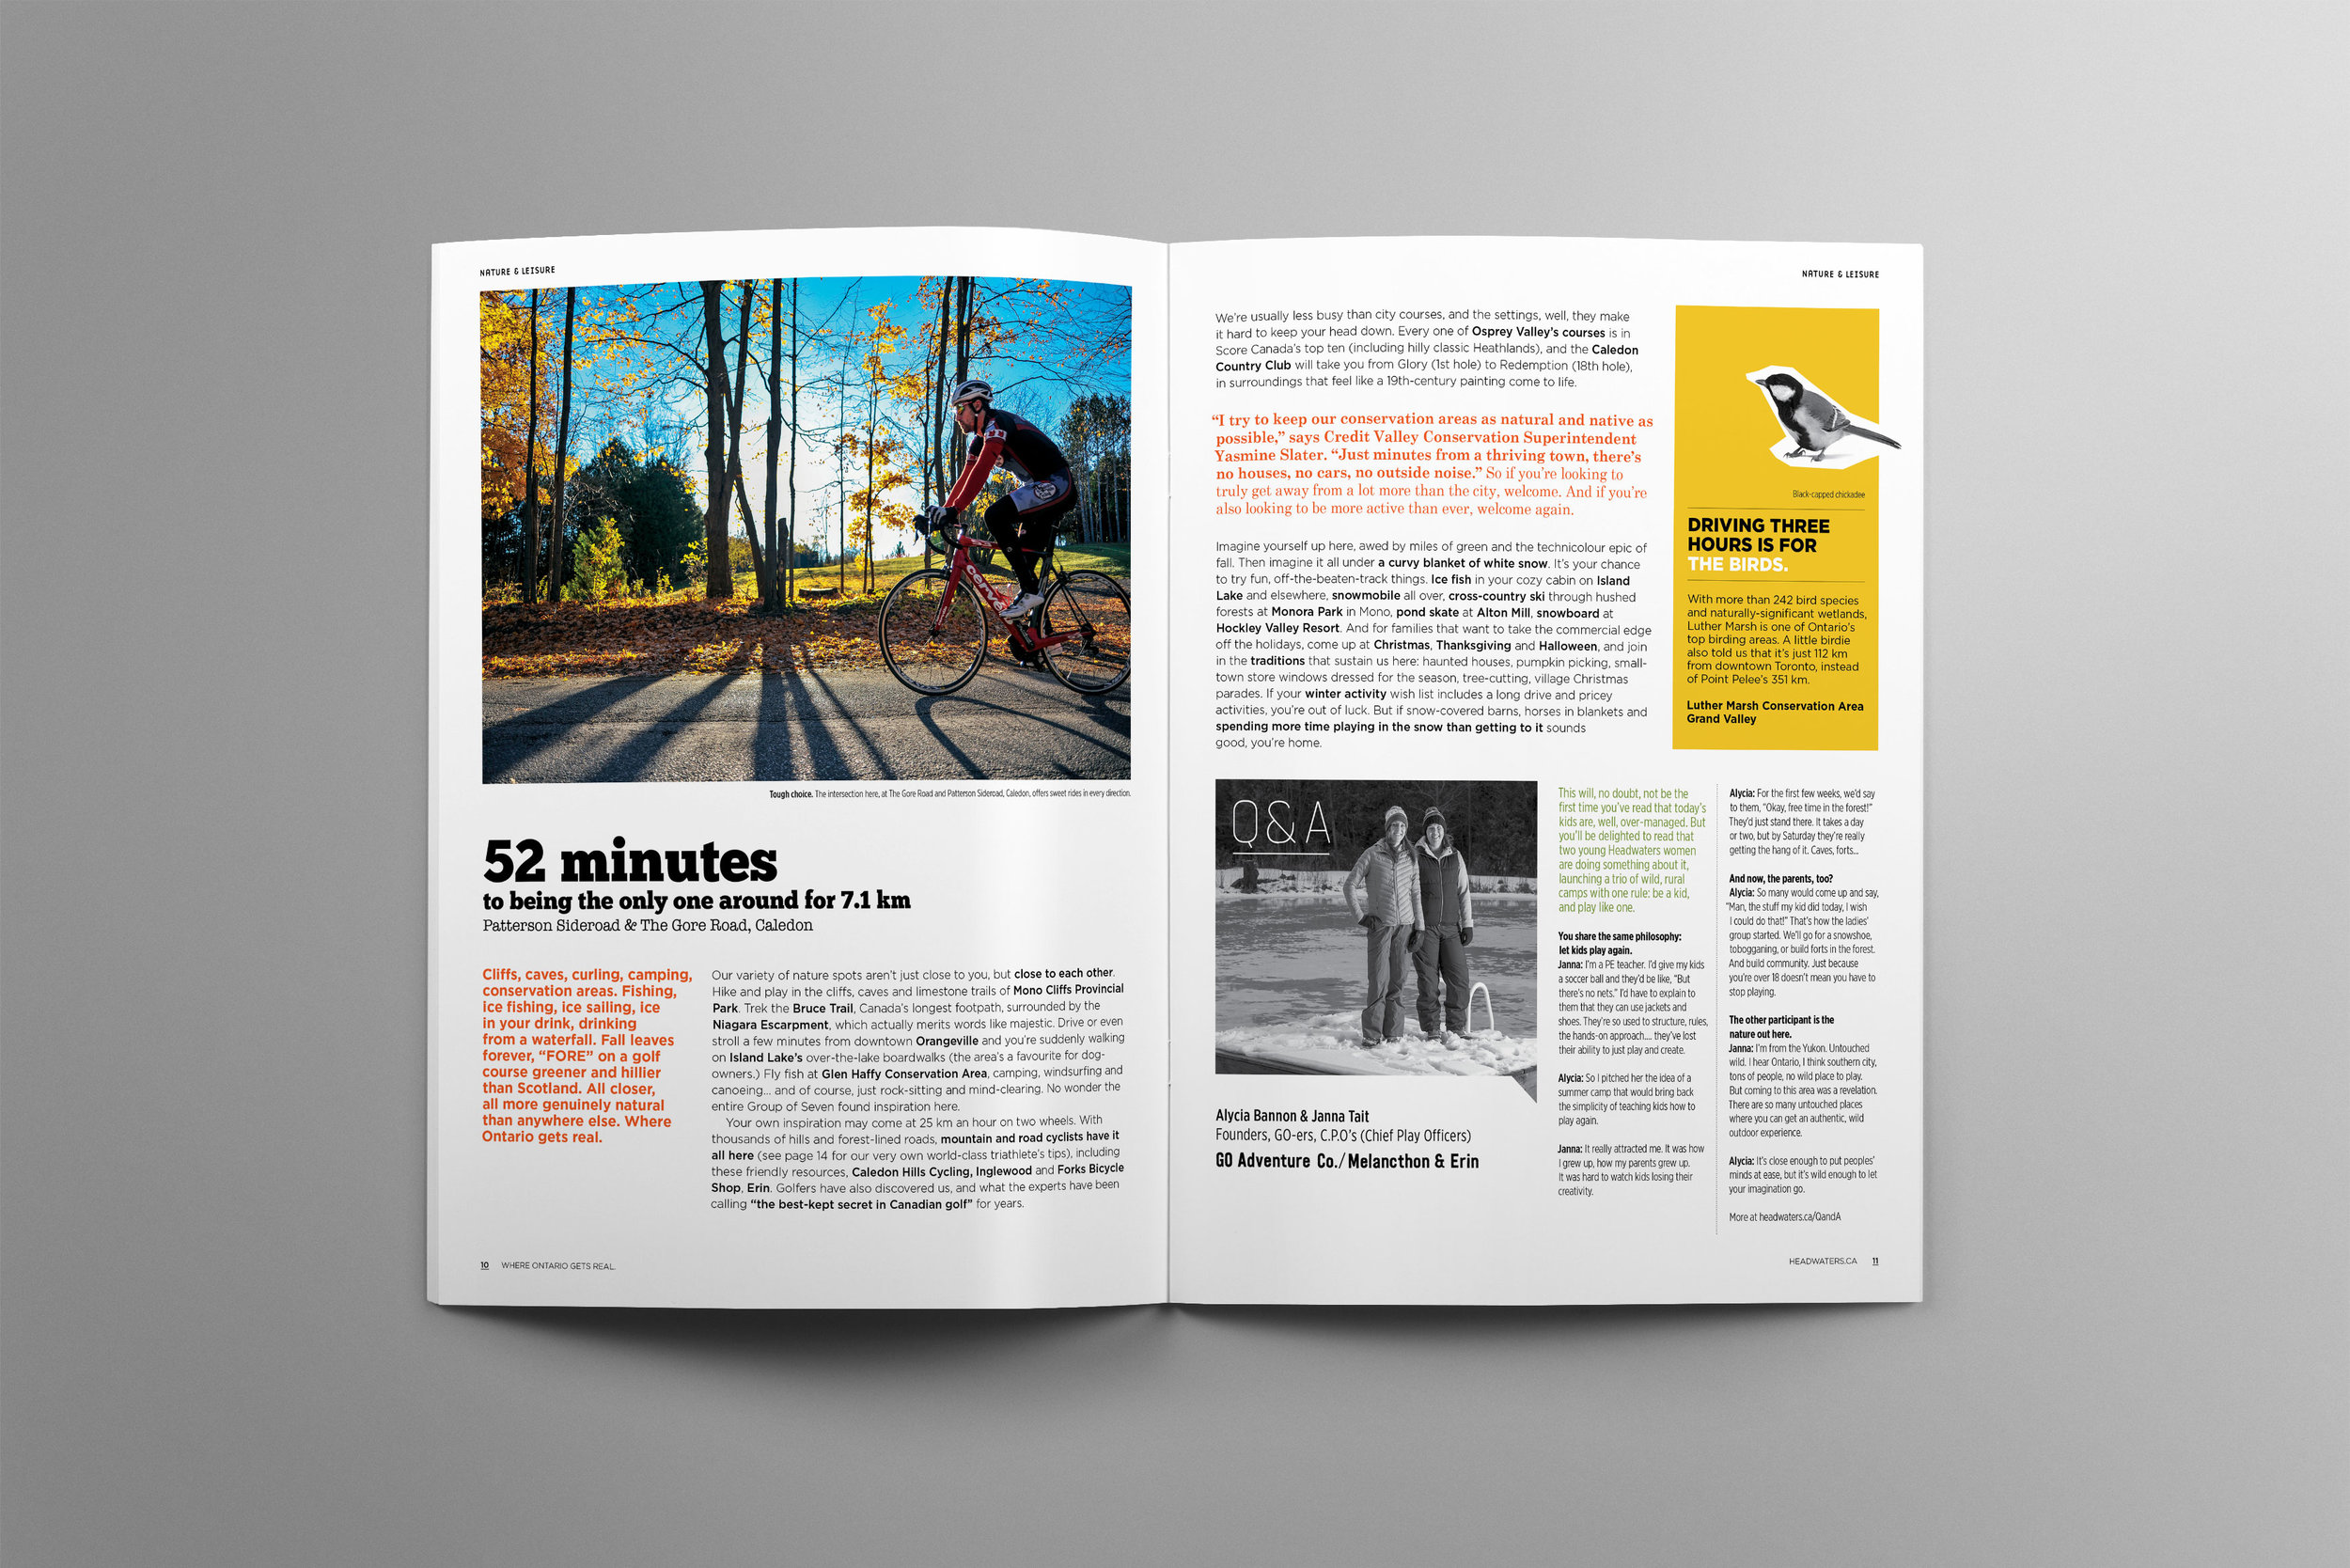 Biking, snowshoeing, hiking – there is so much to do within the great outdoors of Headwaters, Canada. This colourful editorial layout shows you the ins and outs of adventure within the Ontario region.